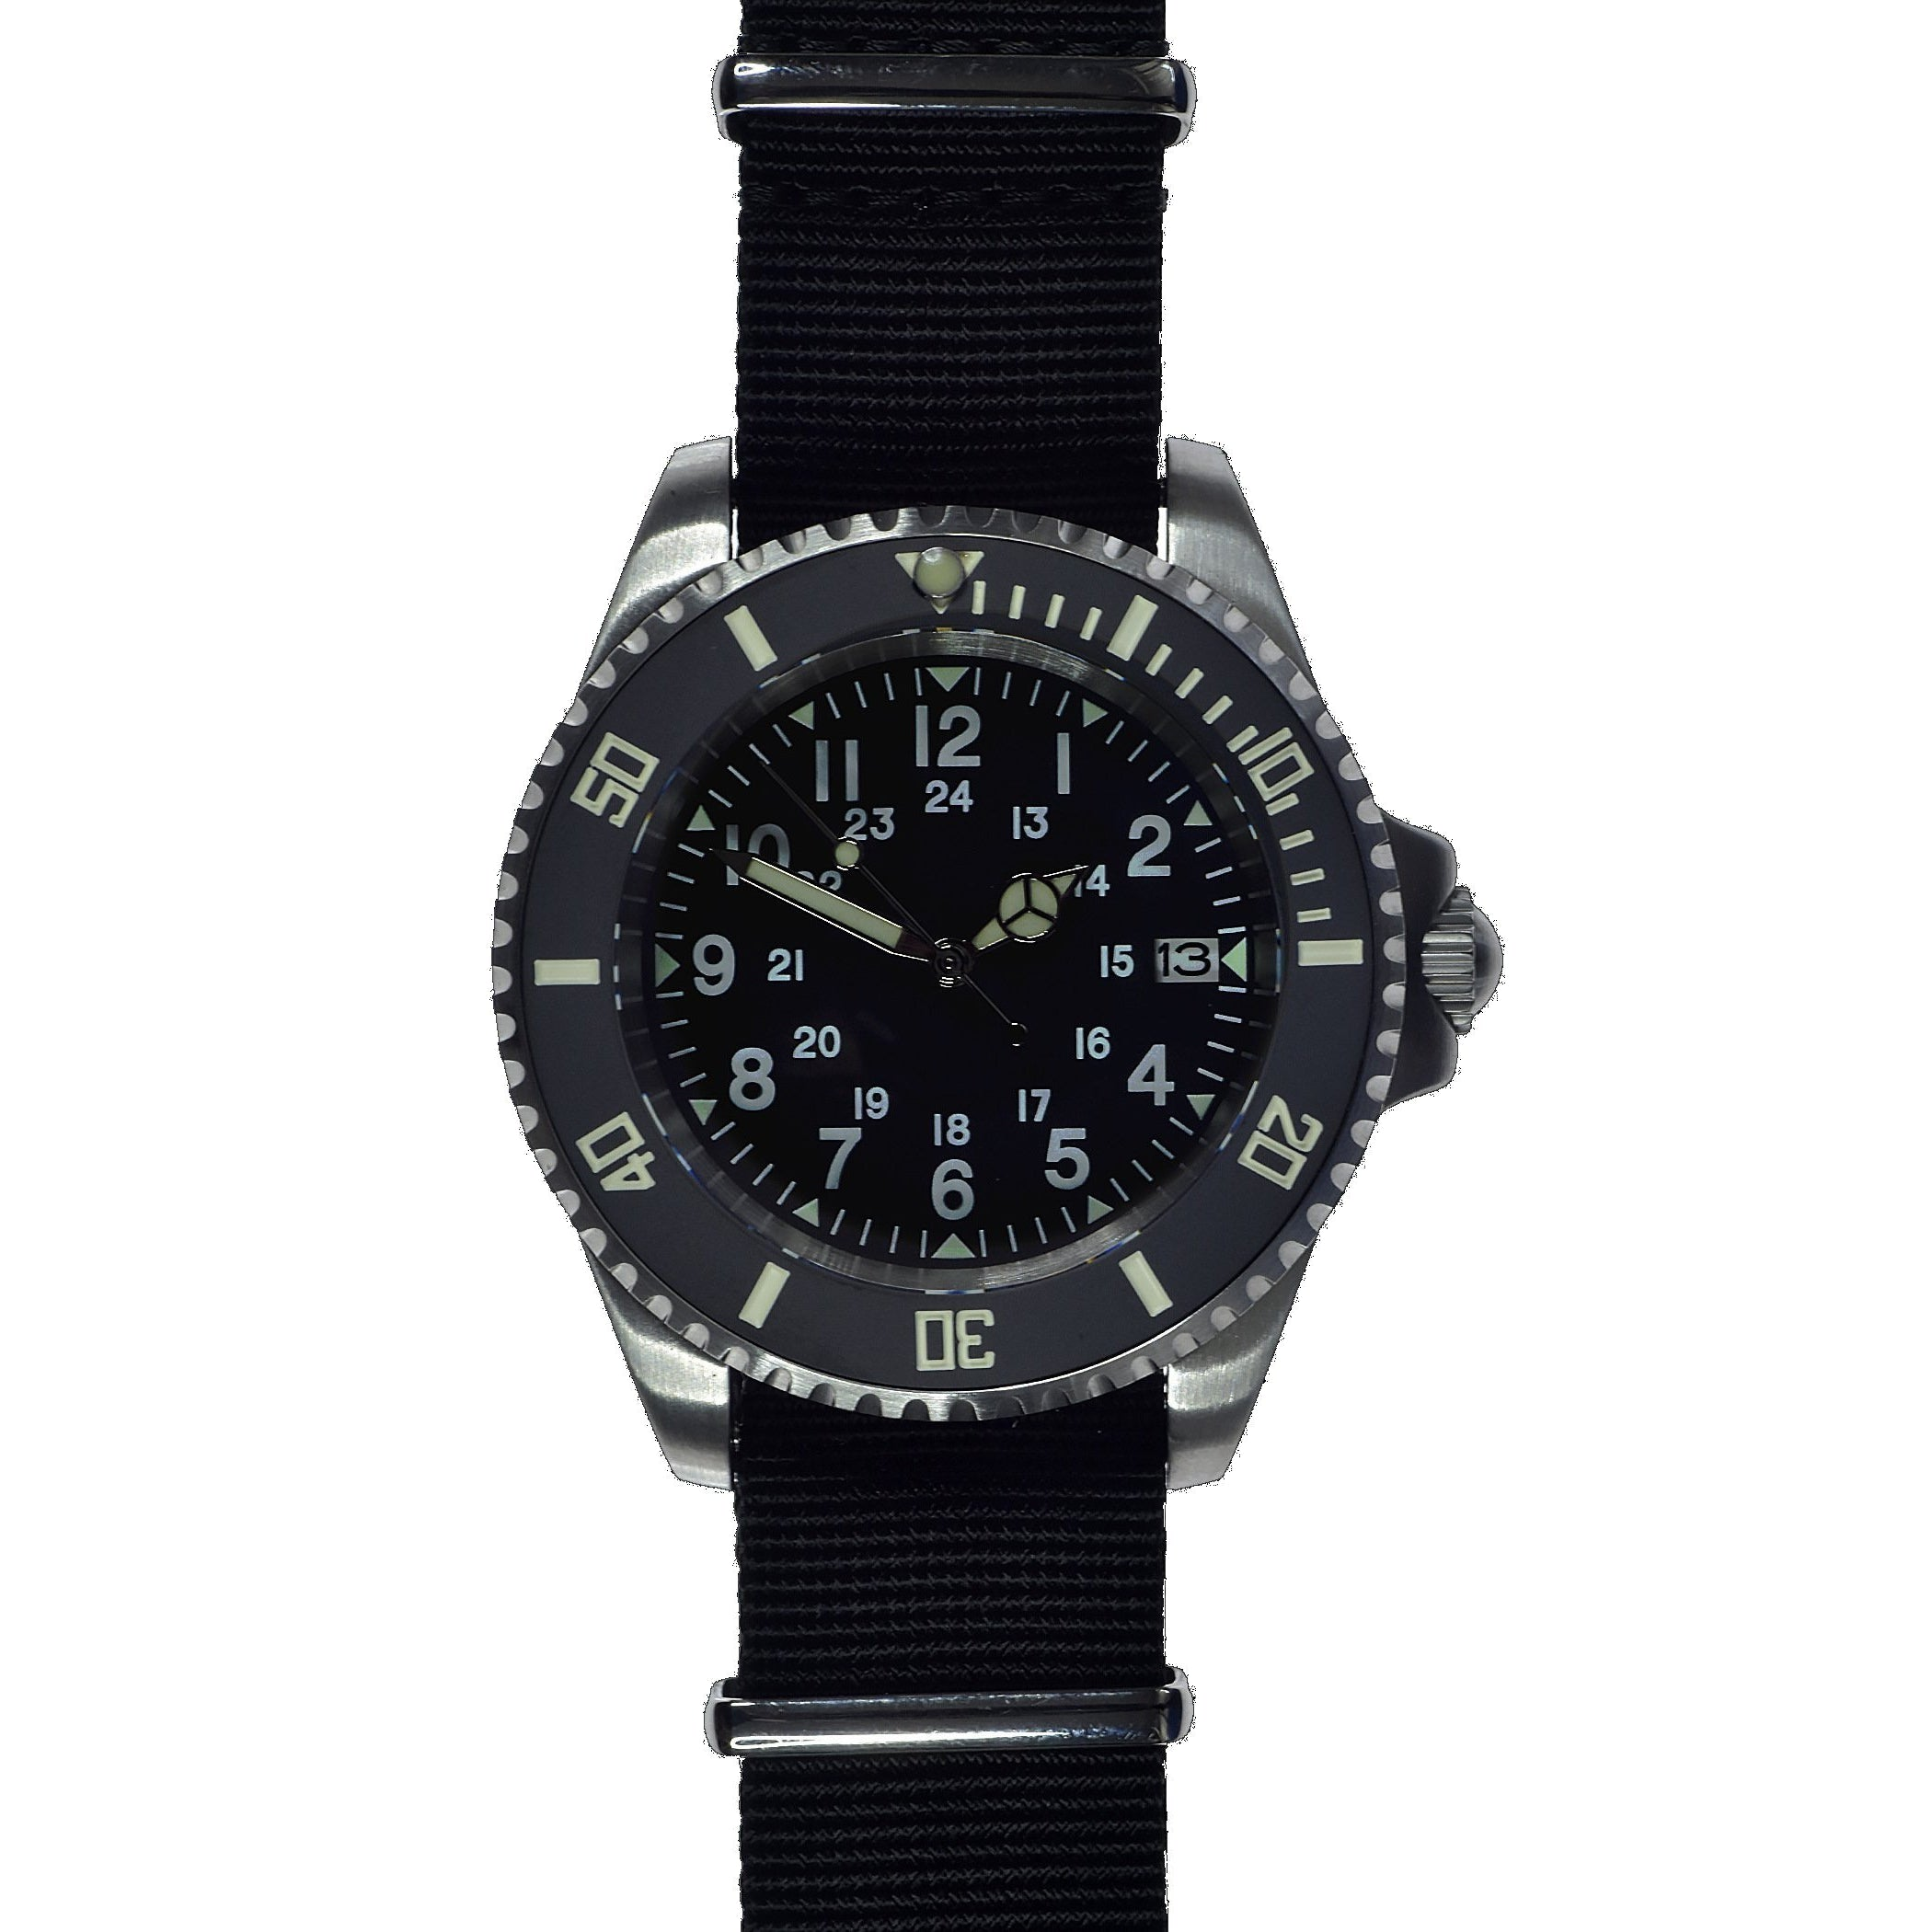 MWC 24 Jewel U.S Pattern 300m Automatic Military Divers Watch